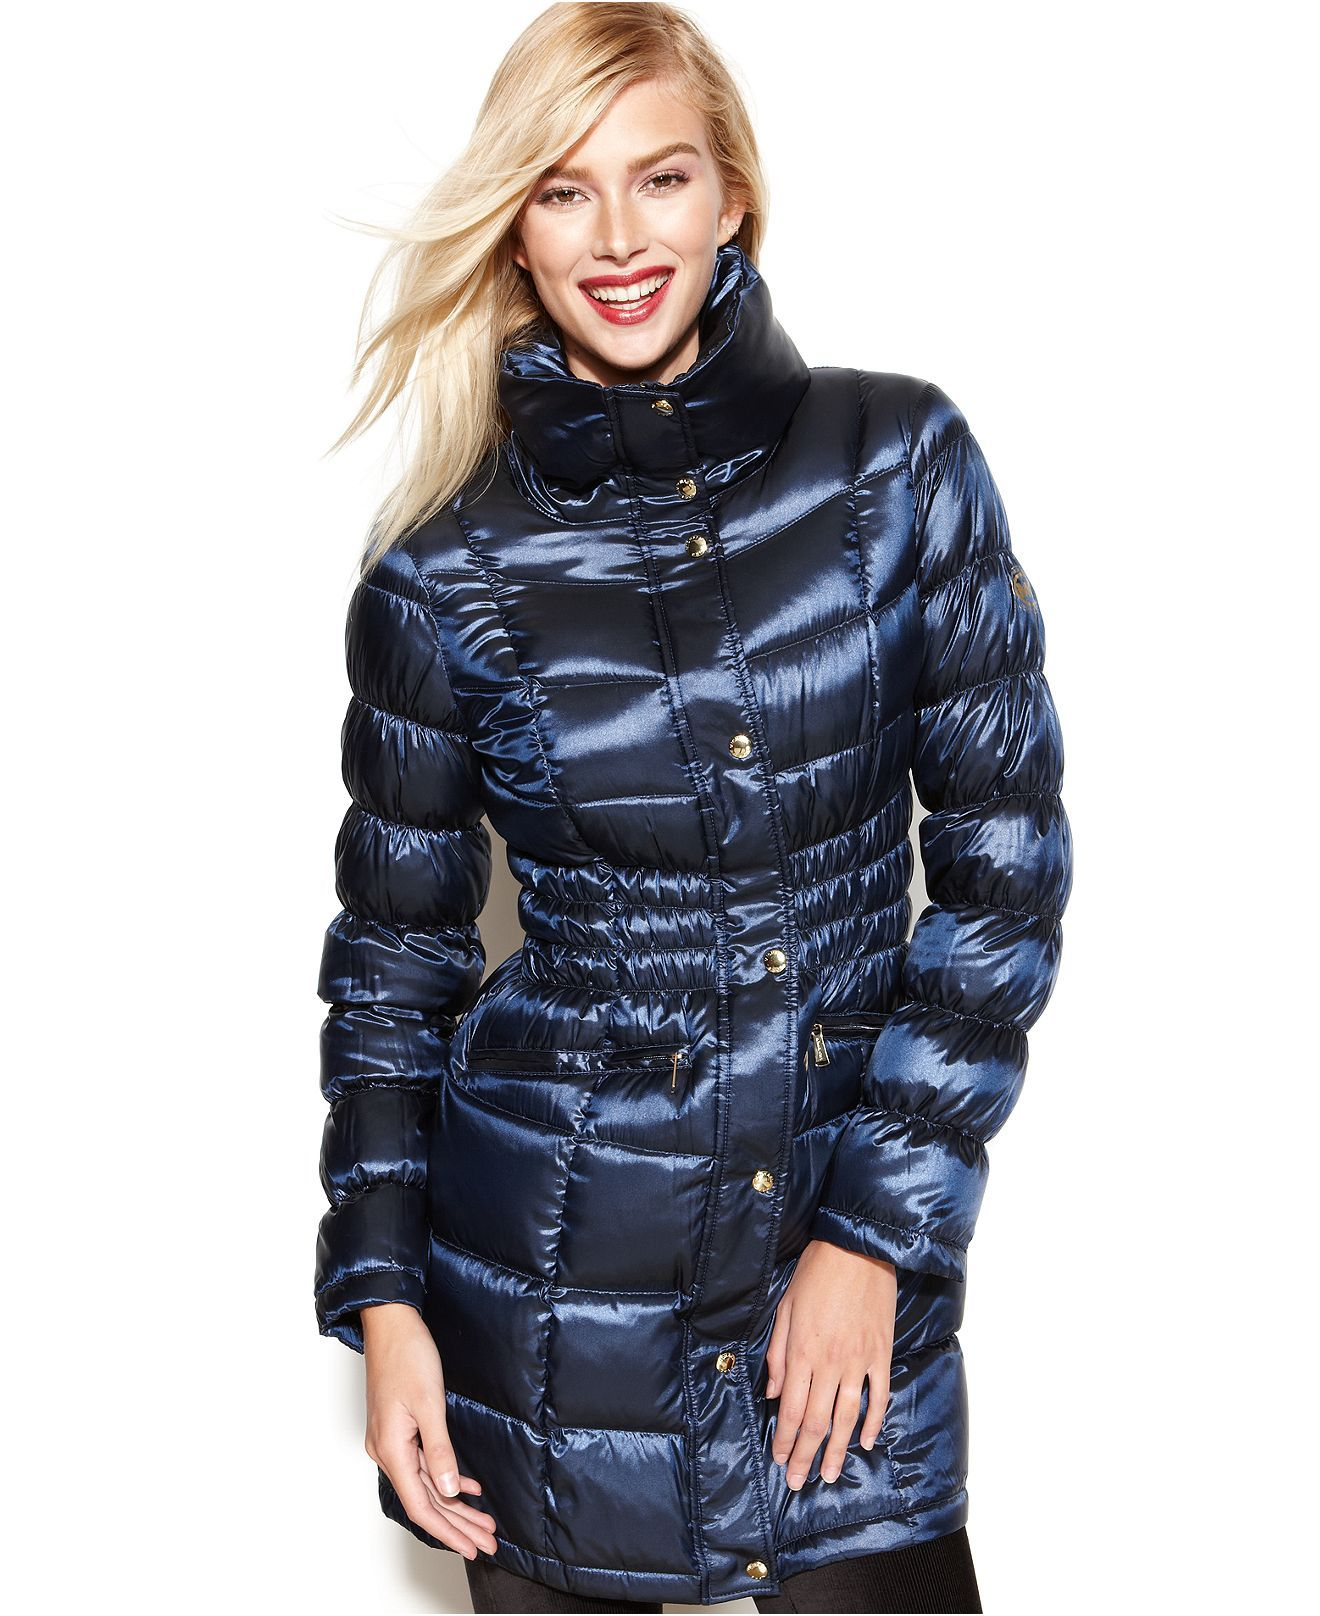 RESTOCK on Down Jackets now available at La Rosa